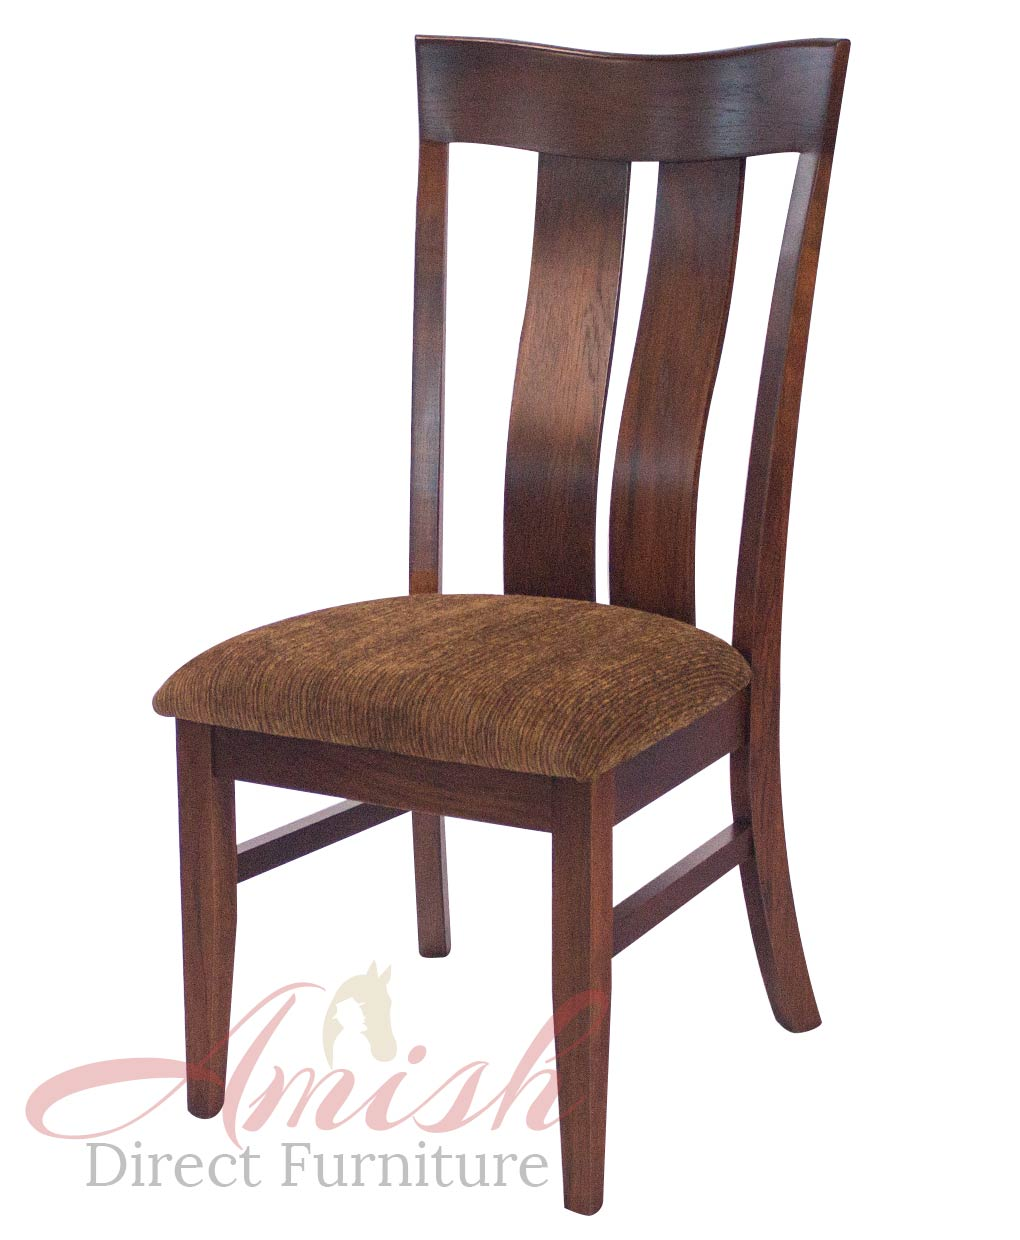 Sherwood dining chair amish direct furniture